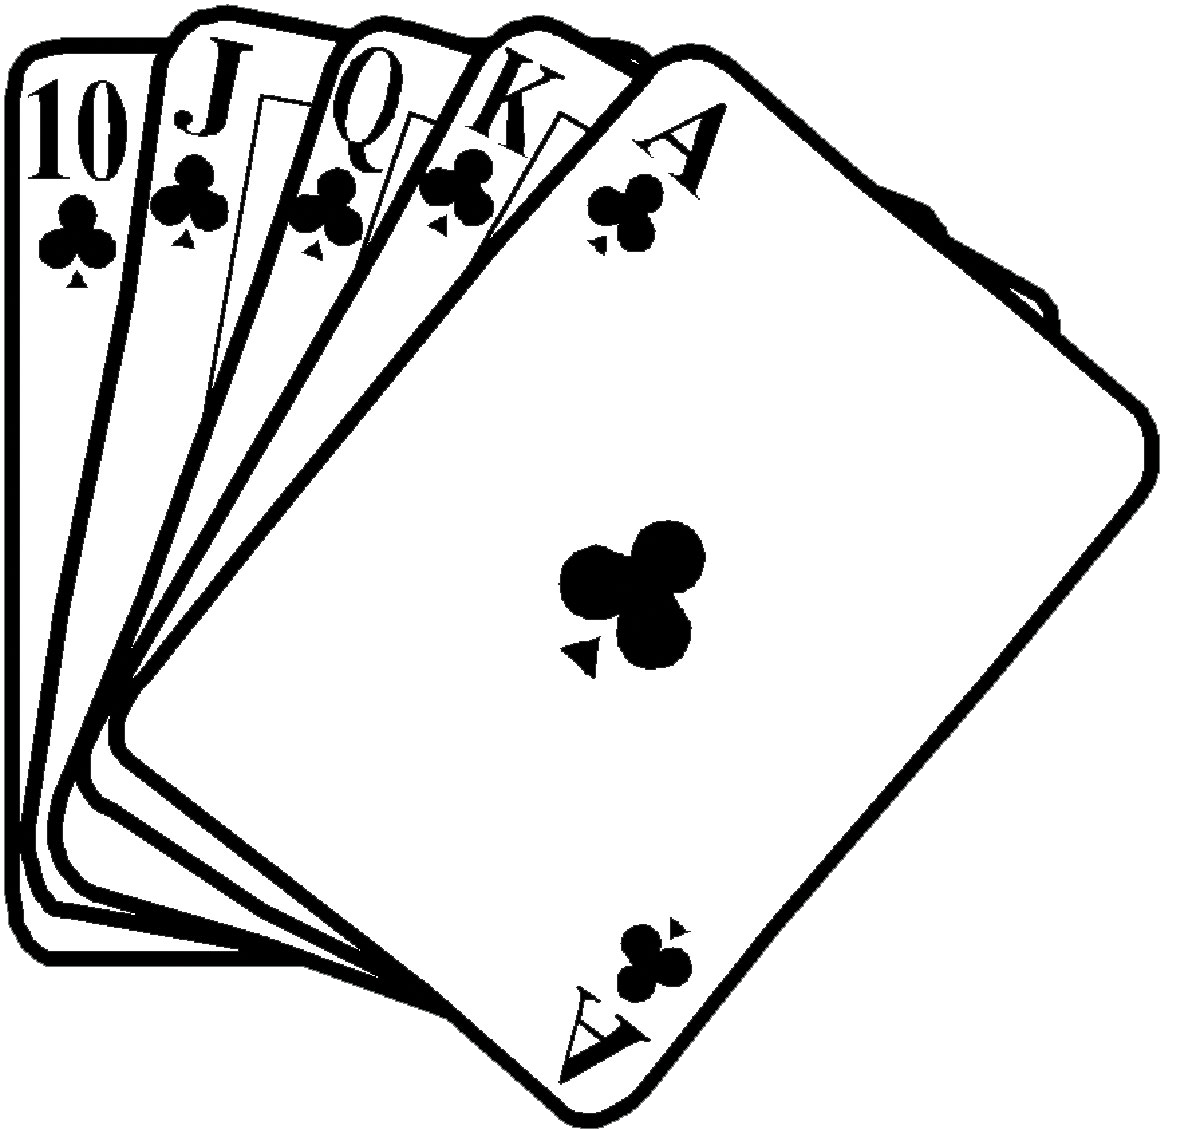 poker and hand Poker terms and phrases used at the poker table, including poker glossary definitions explained in detail to improve your understanding of the game  a poker hand.